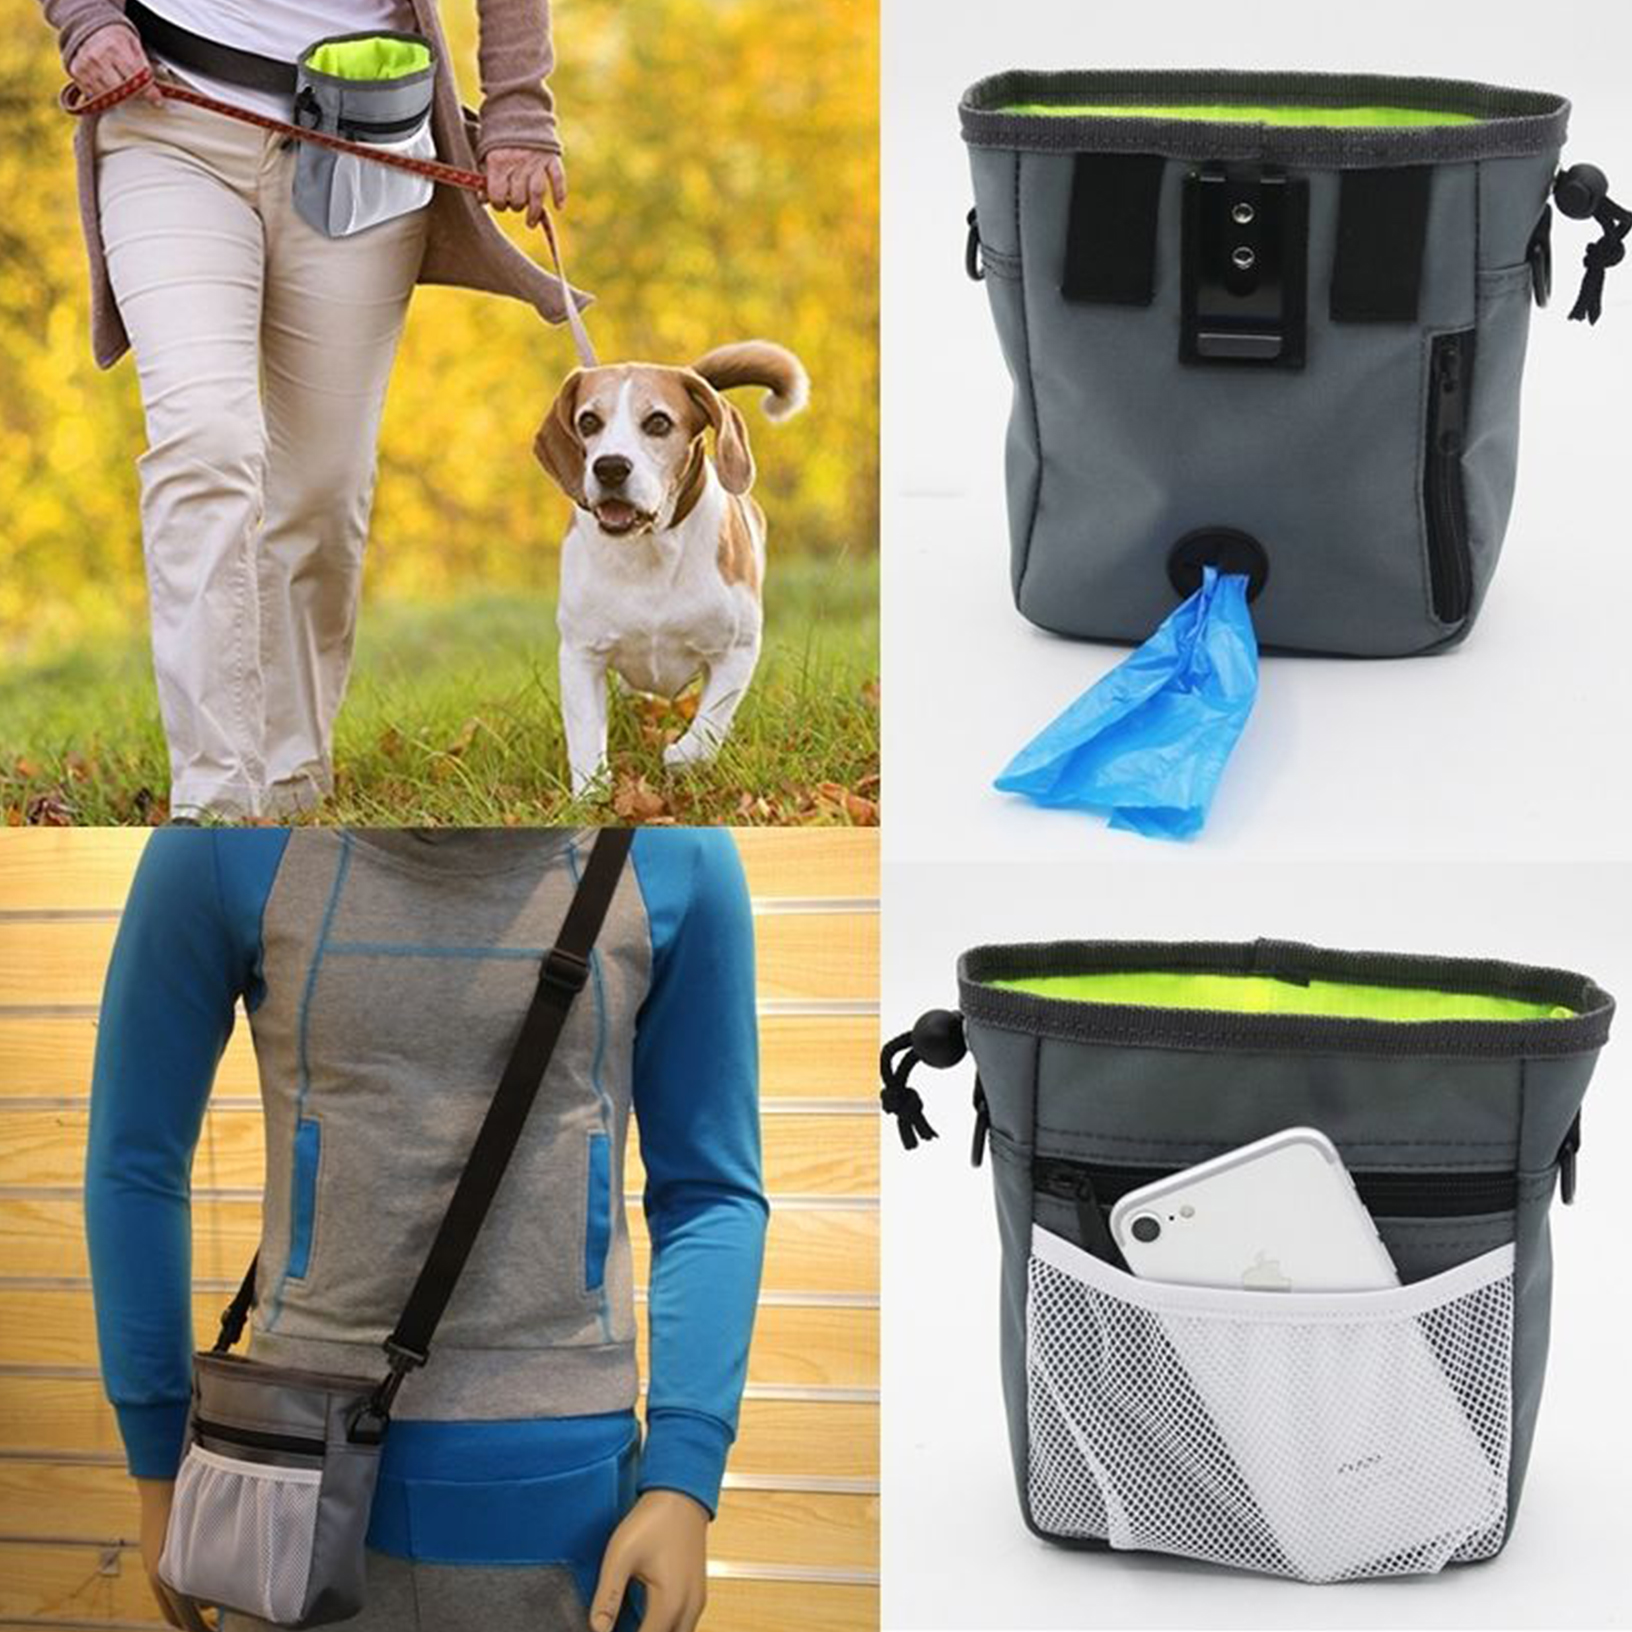 dog agility when the purchase of a dog gift dog training Dog training bag with snacks